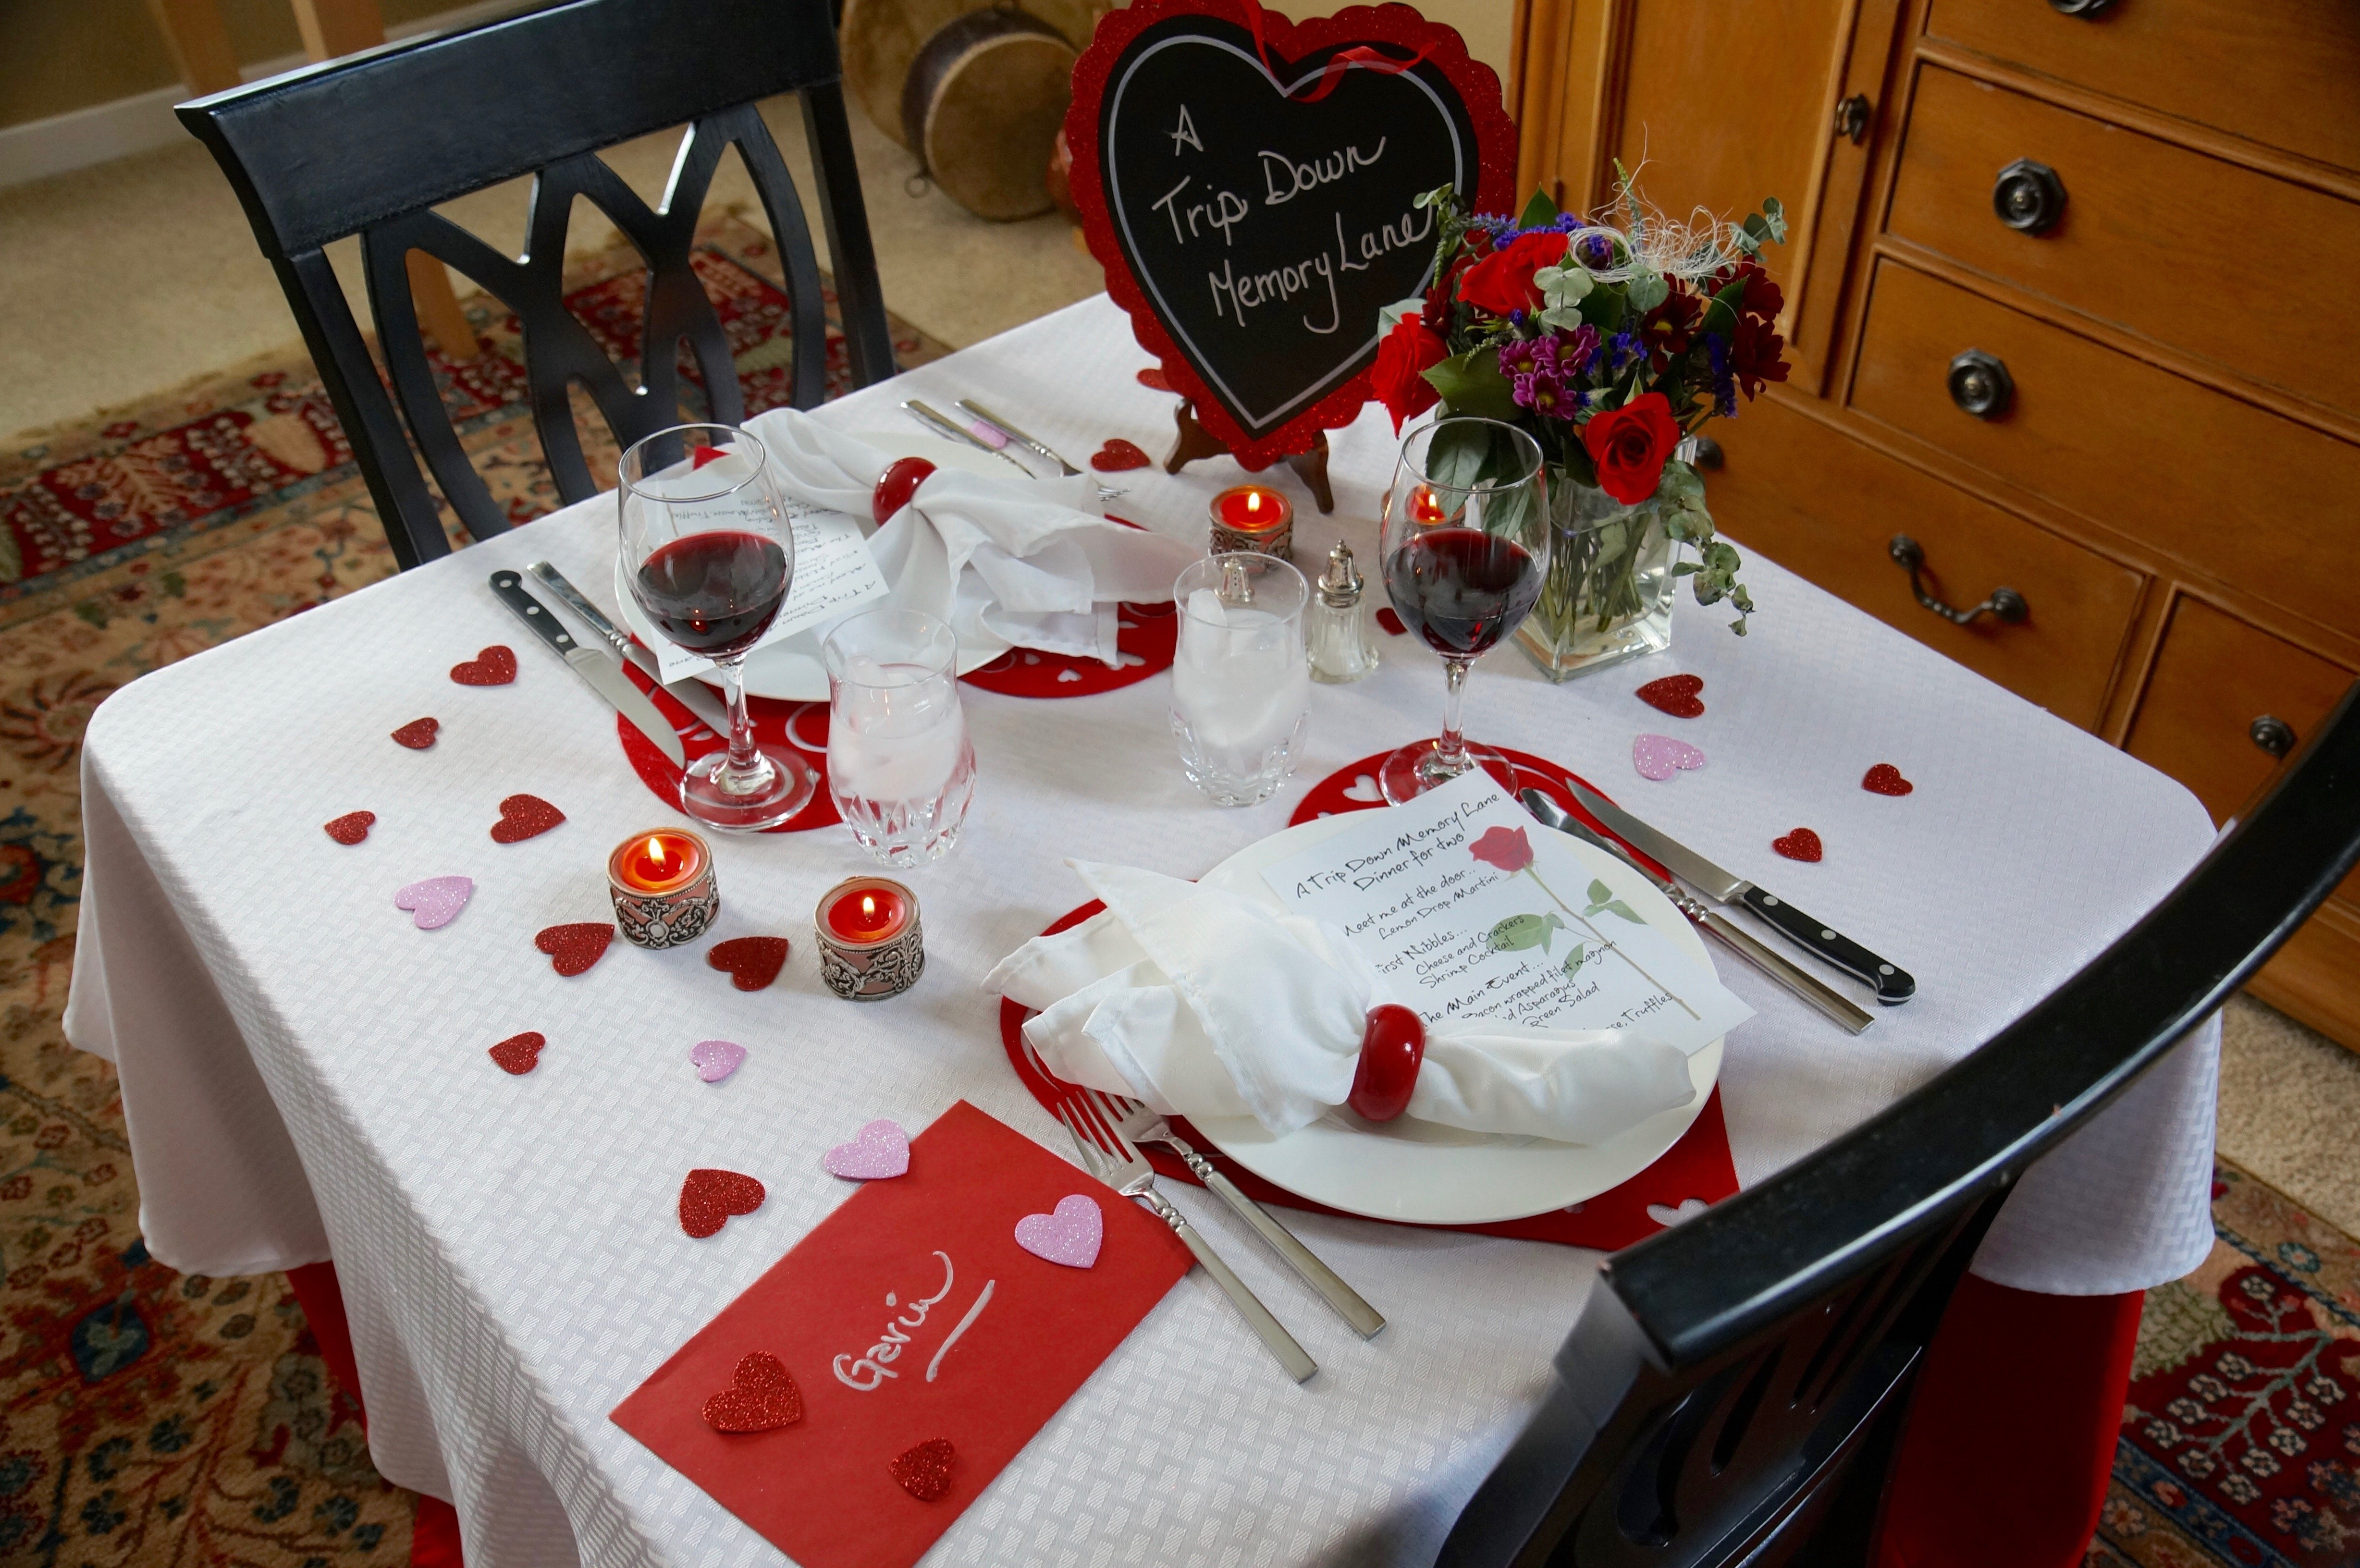 10 Fabulous Ideas For Romantic Night At Home extremely romantic night ideas at home 25 unique indoor picnic 9 2020